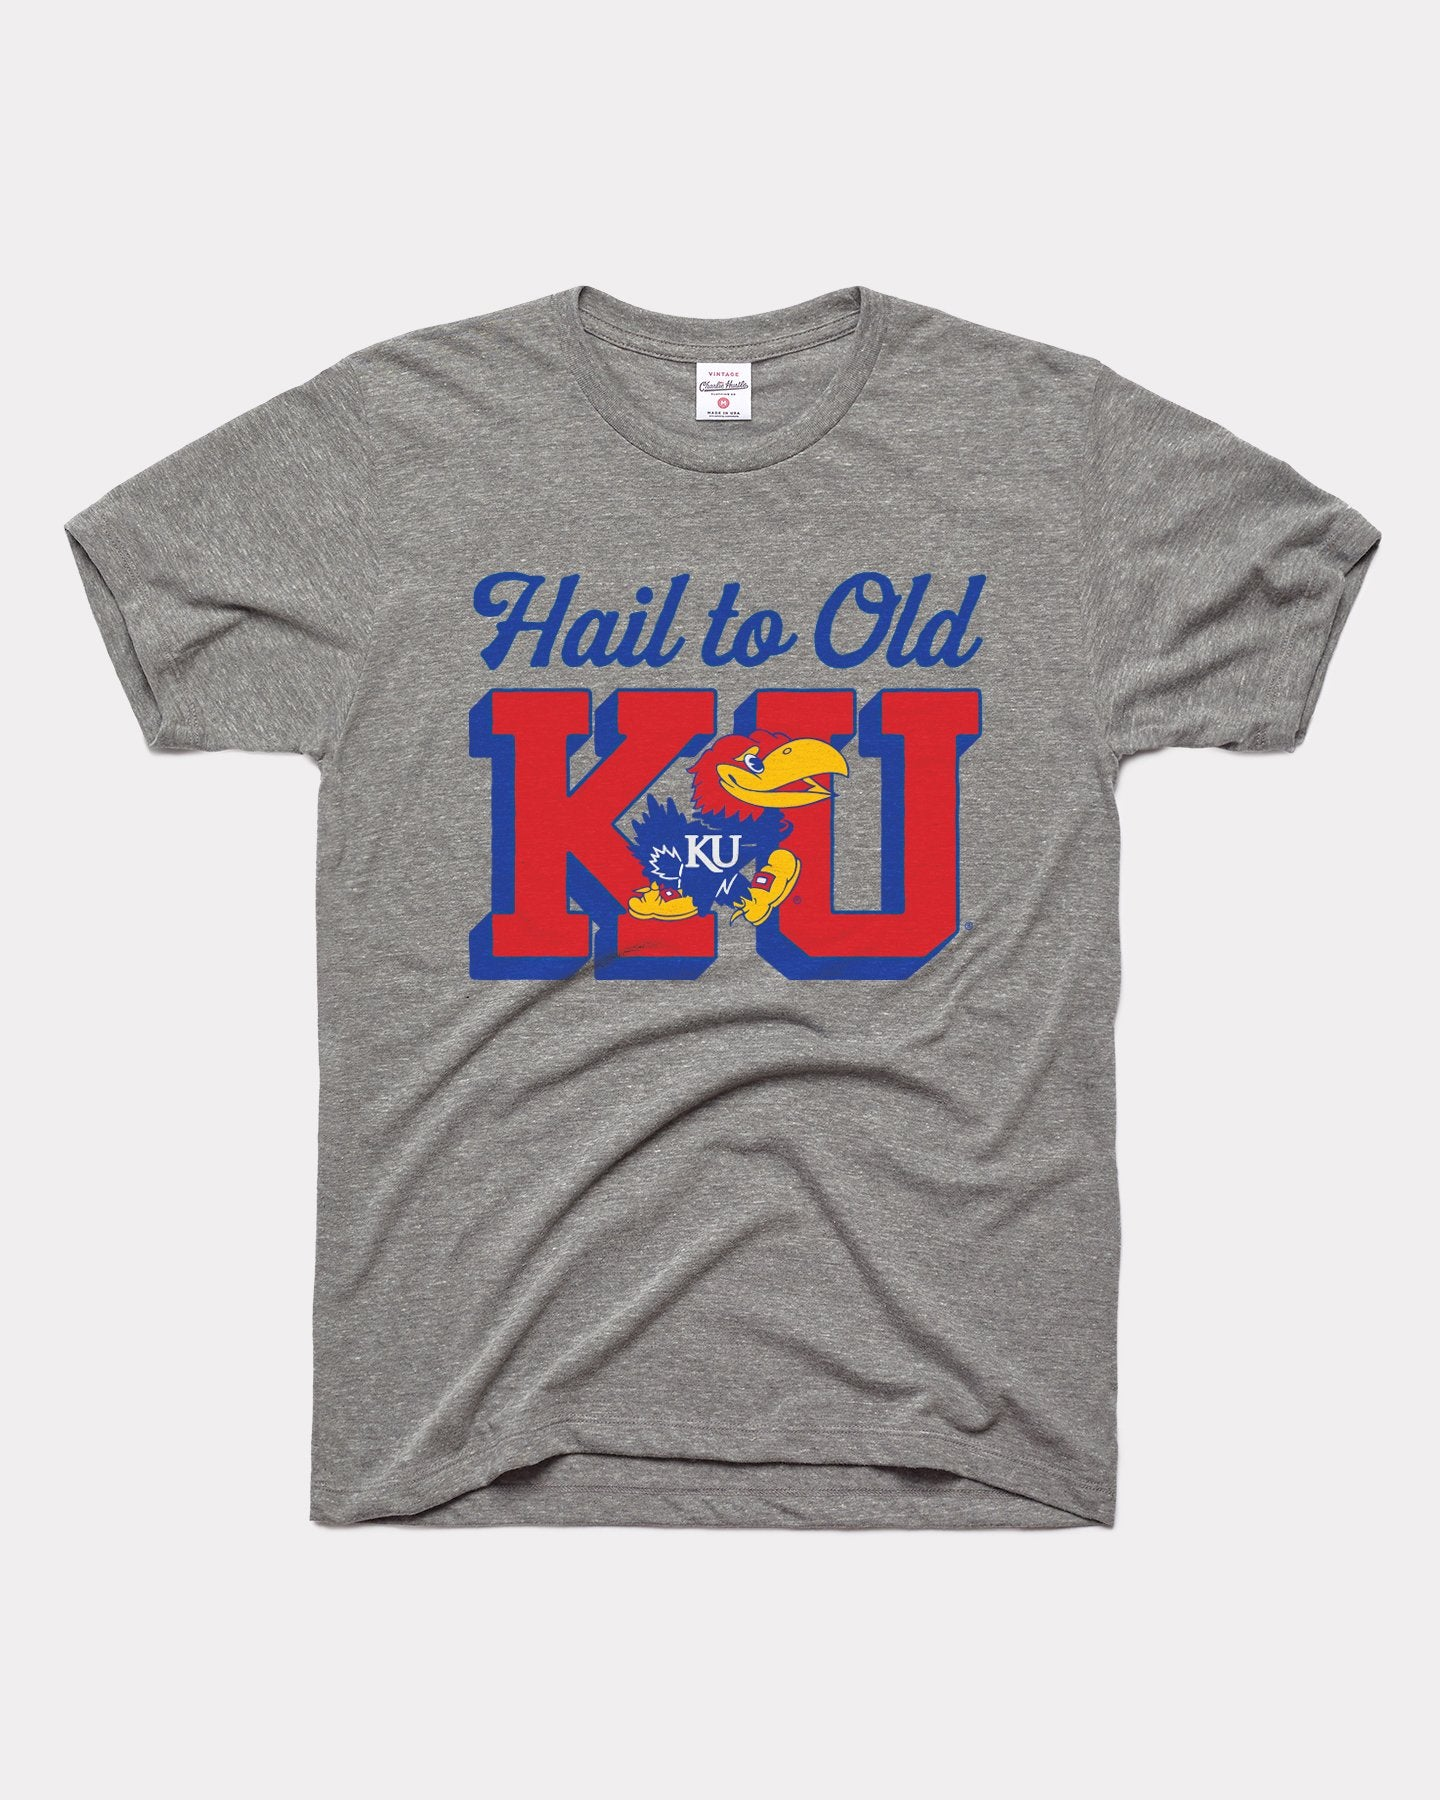 Grey Kansas Jayhawks Hail to Old KU Vintage T-Shirt